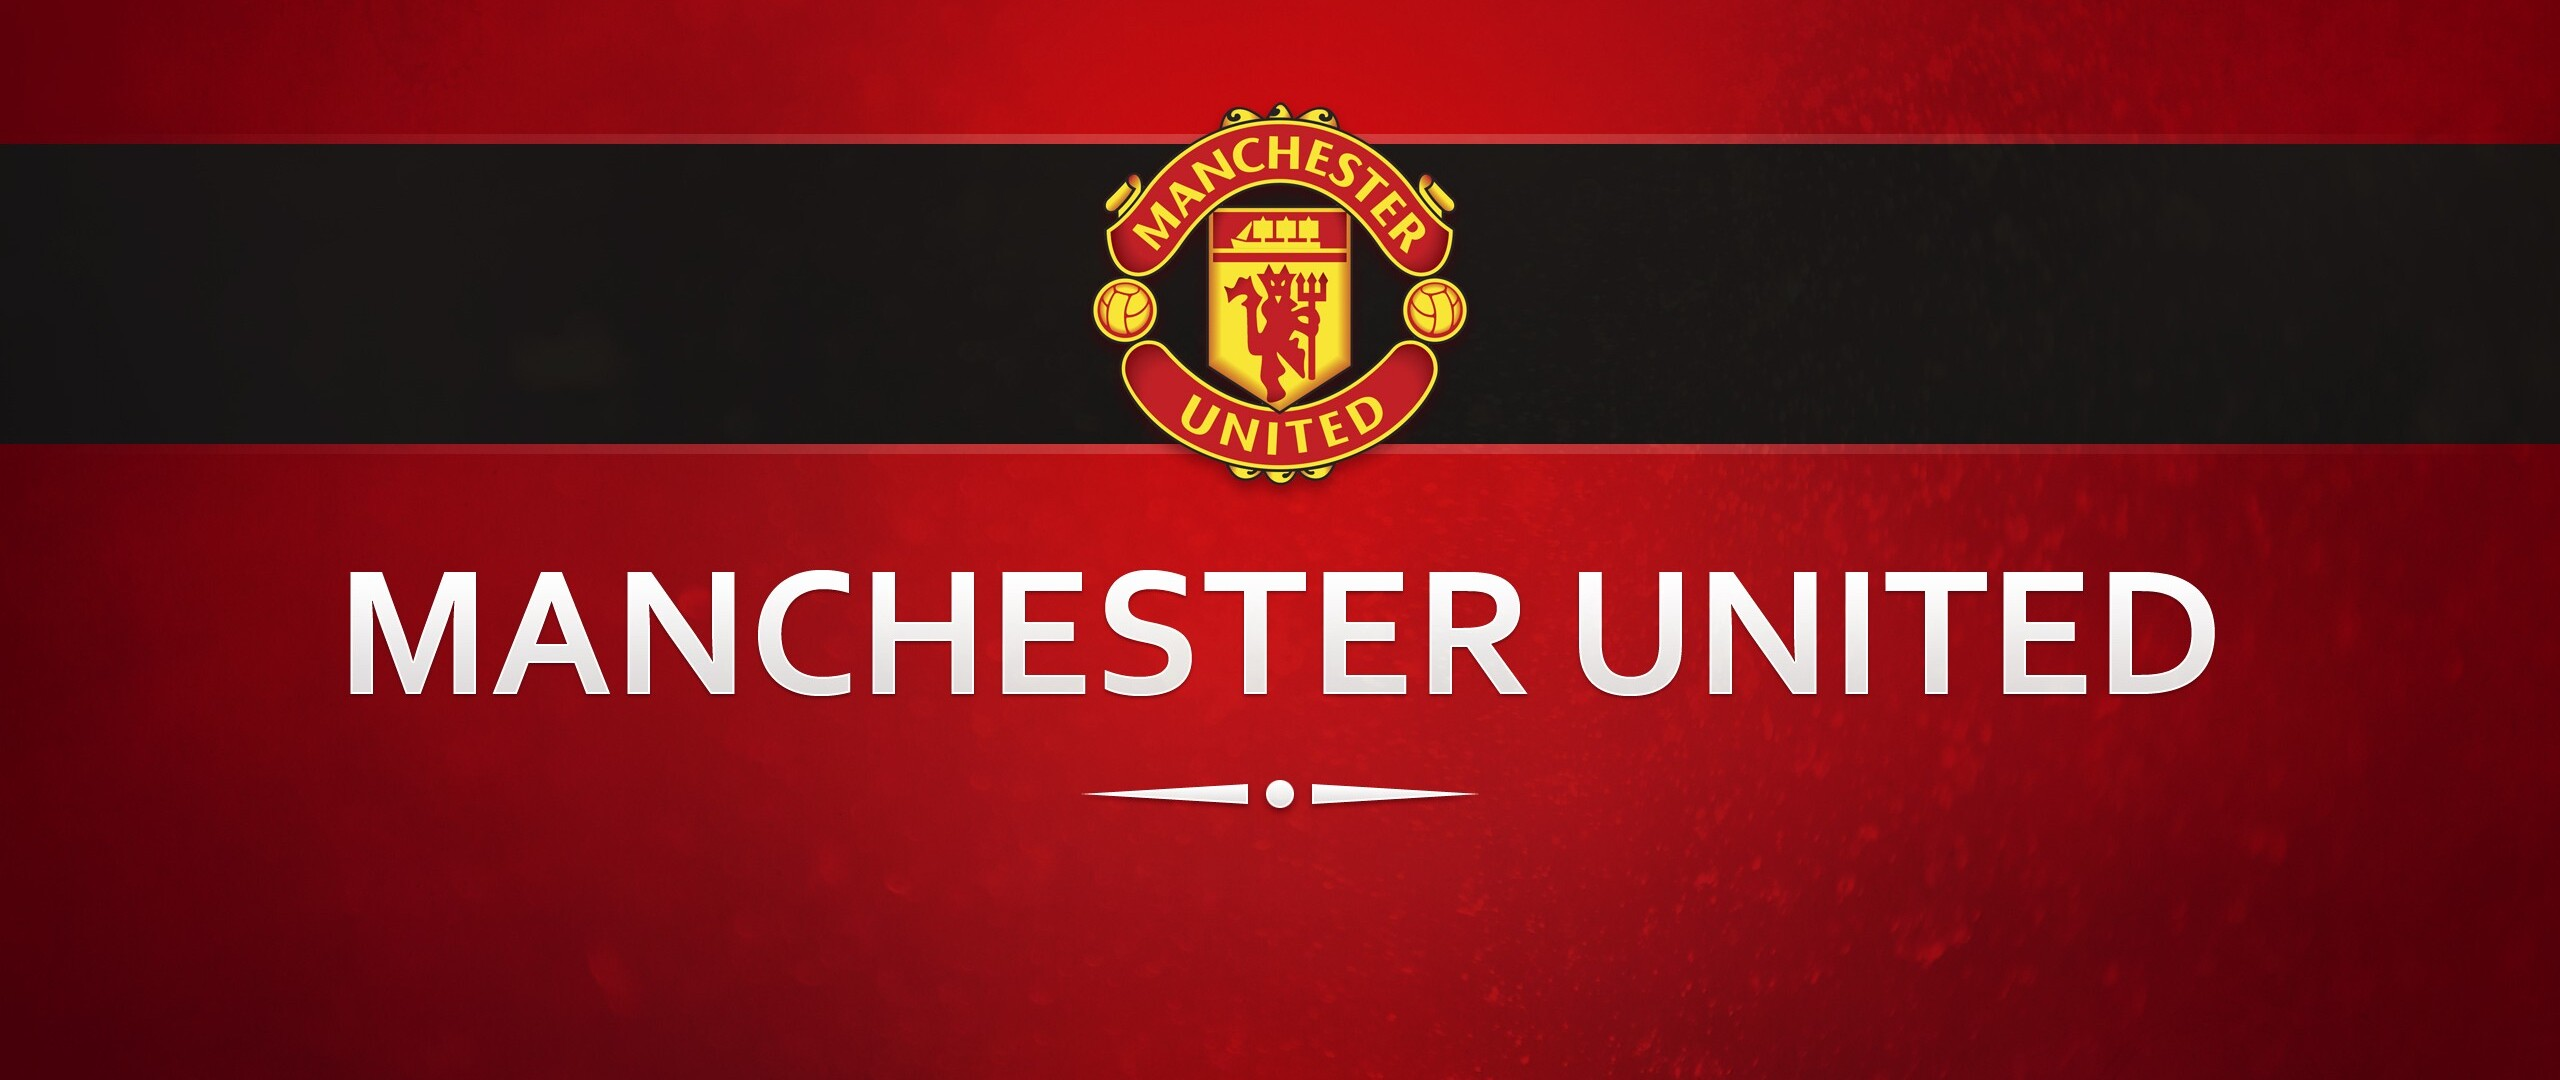 2560x1080 manchester united 2560x1080 resolution hd 4k wallpapers images backgrounds photos and pictures 2560x1080 resolution hd 4k wallpapers